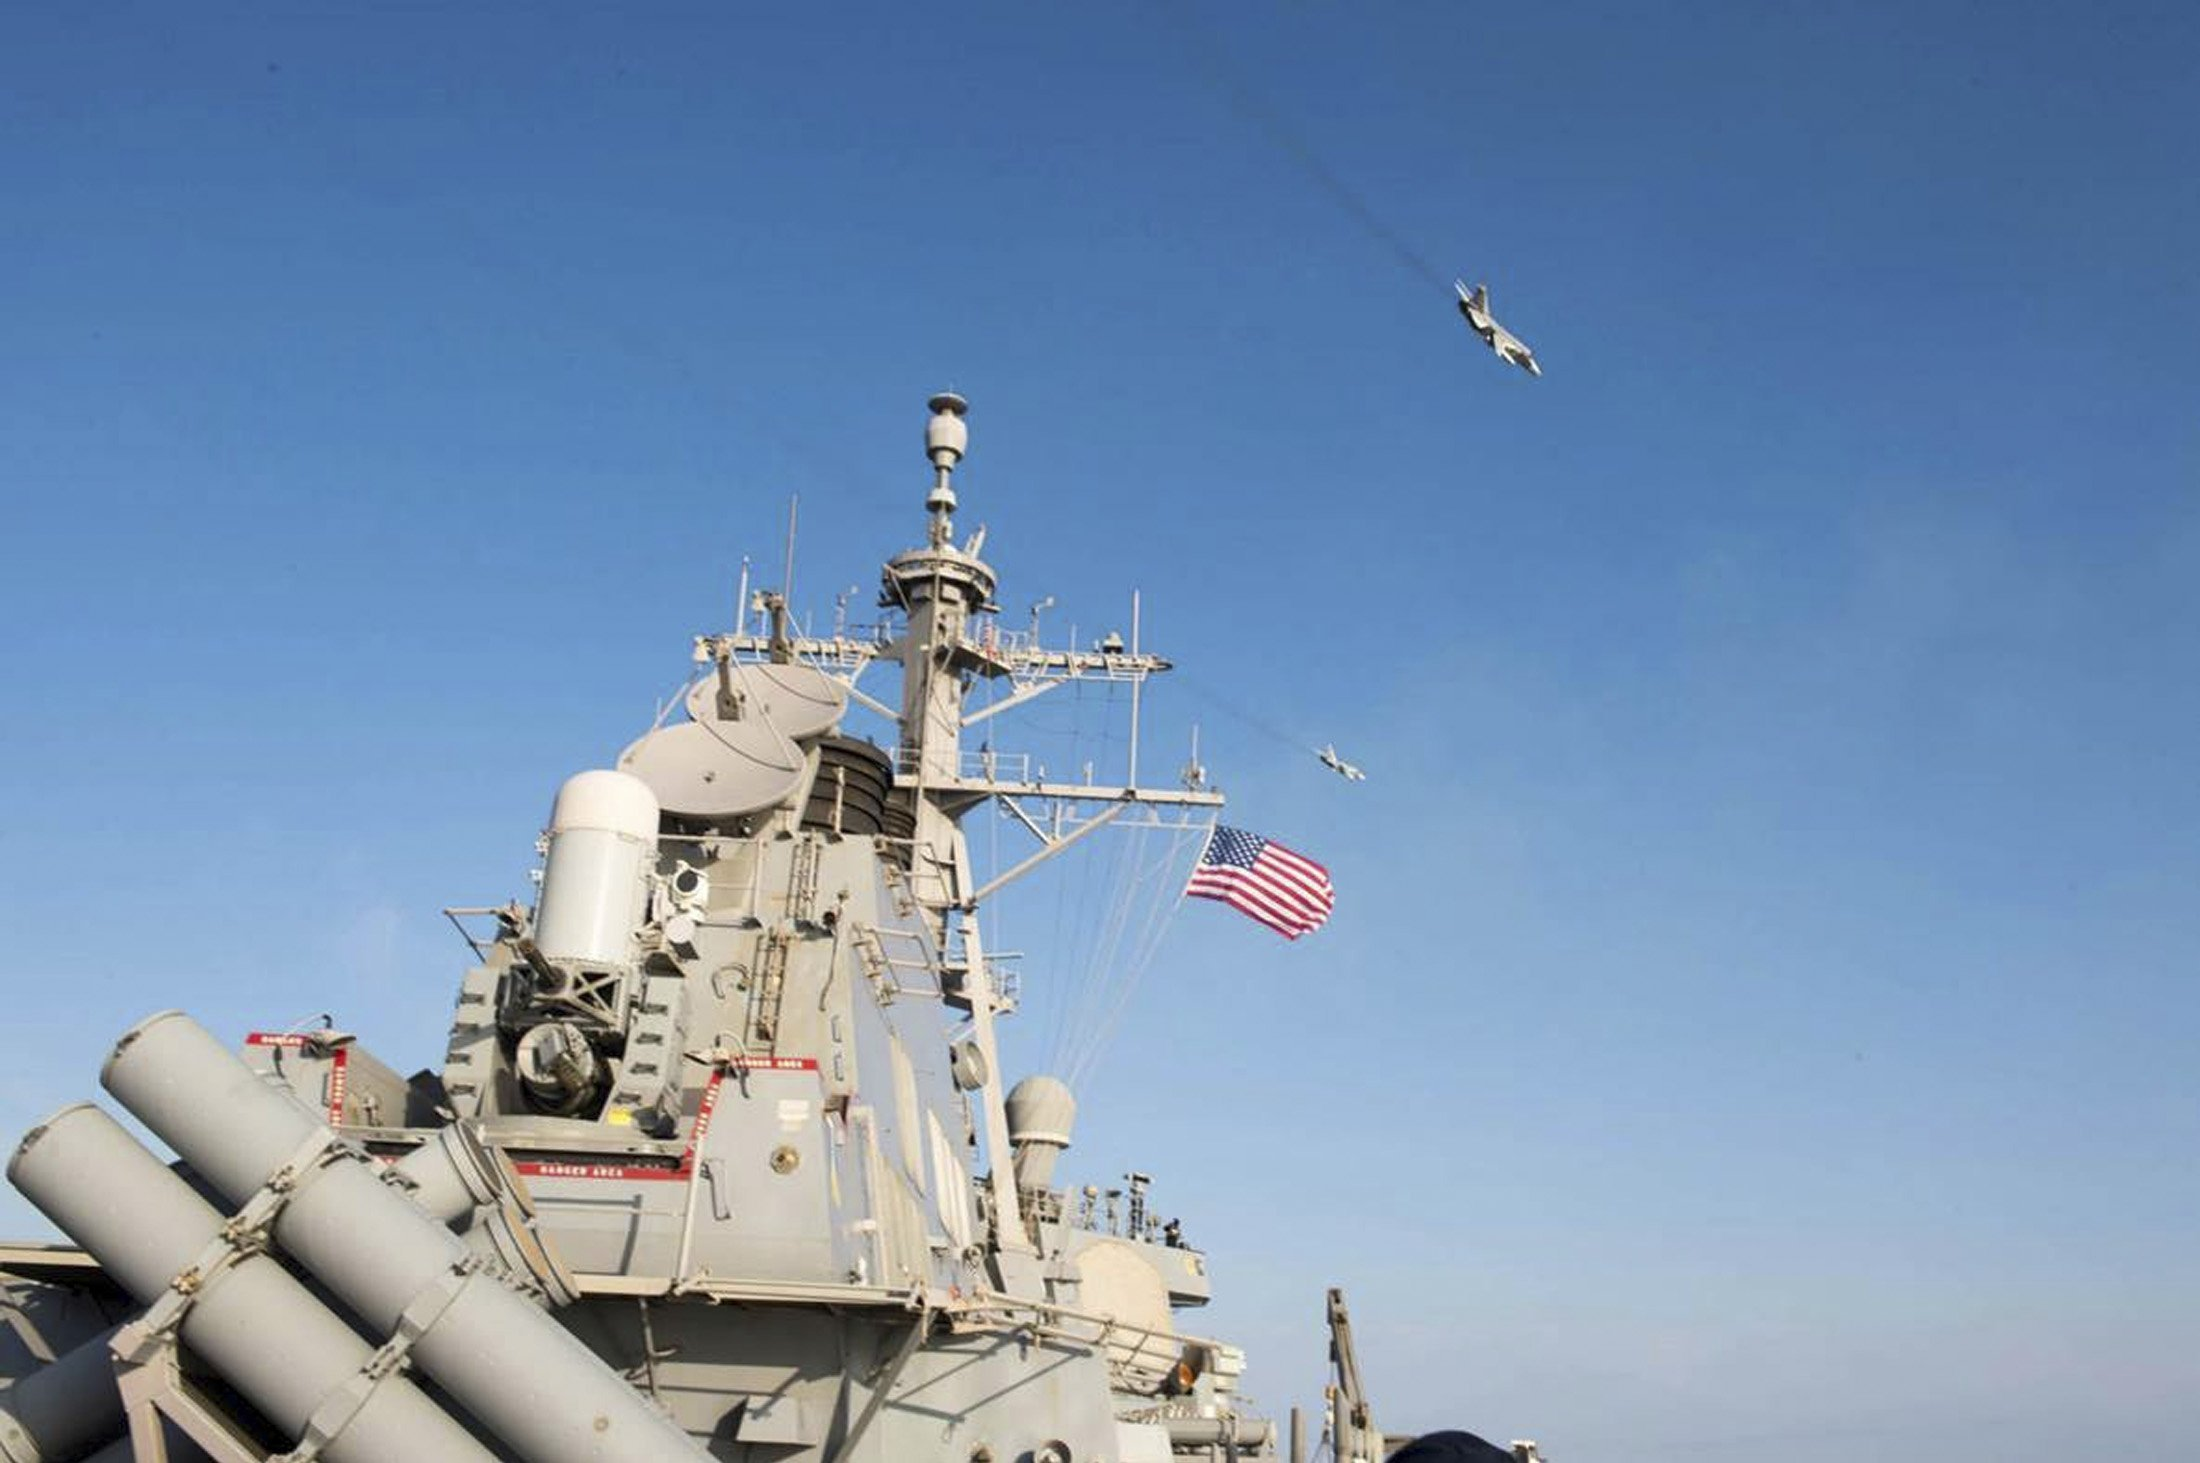 An U.S. Navy picture shows what appears to be a Russian Sukhoi SU-24 attack aircraft flying over the U.S. guided missile destroyer USS Donald Cook in the Baltic Sea in this picture taken April 12, 2016 and released April 13, 2016